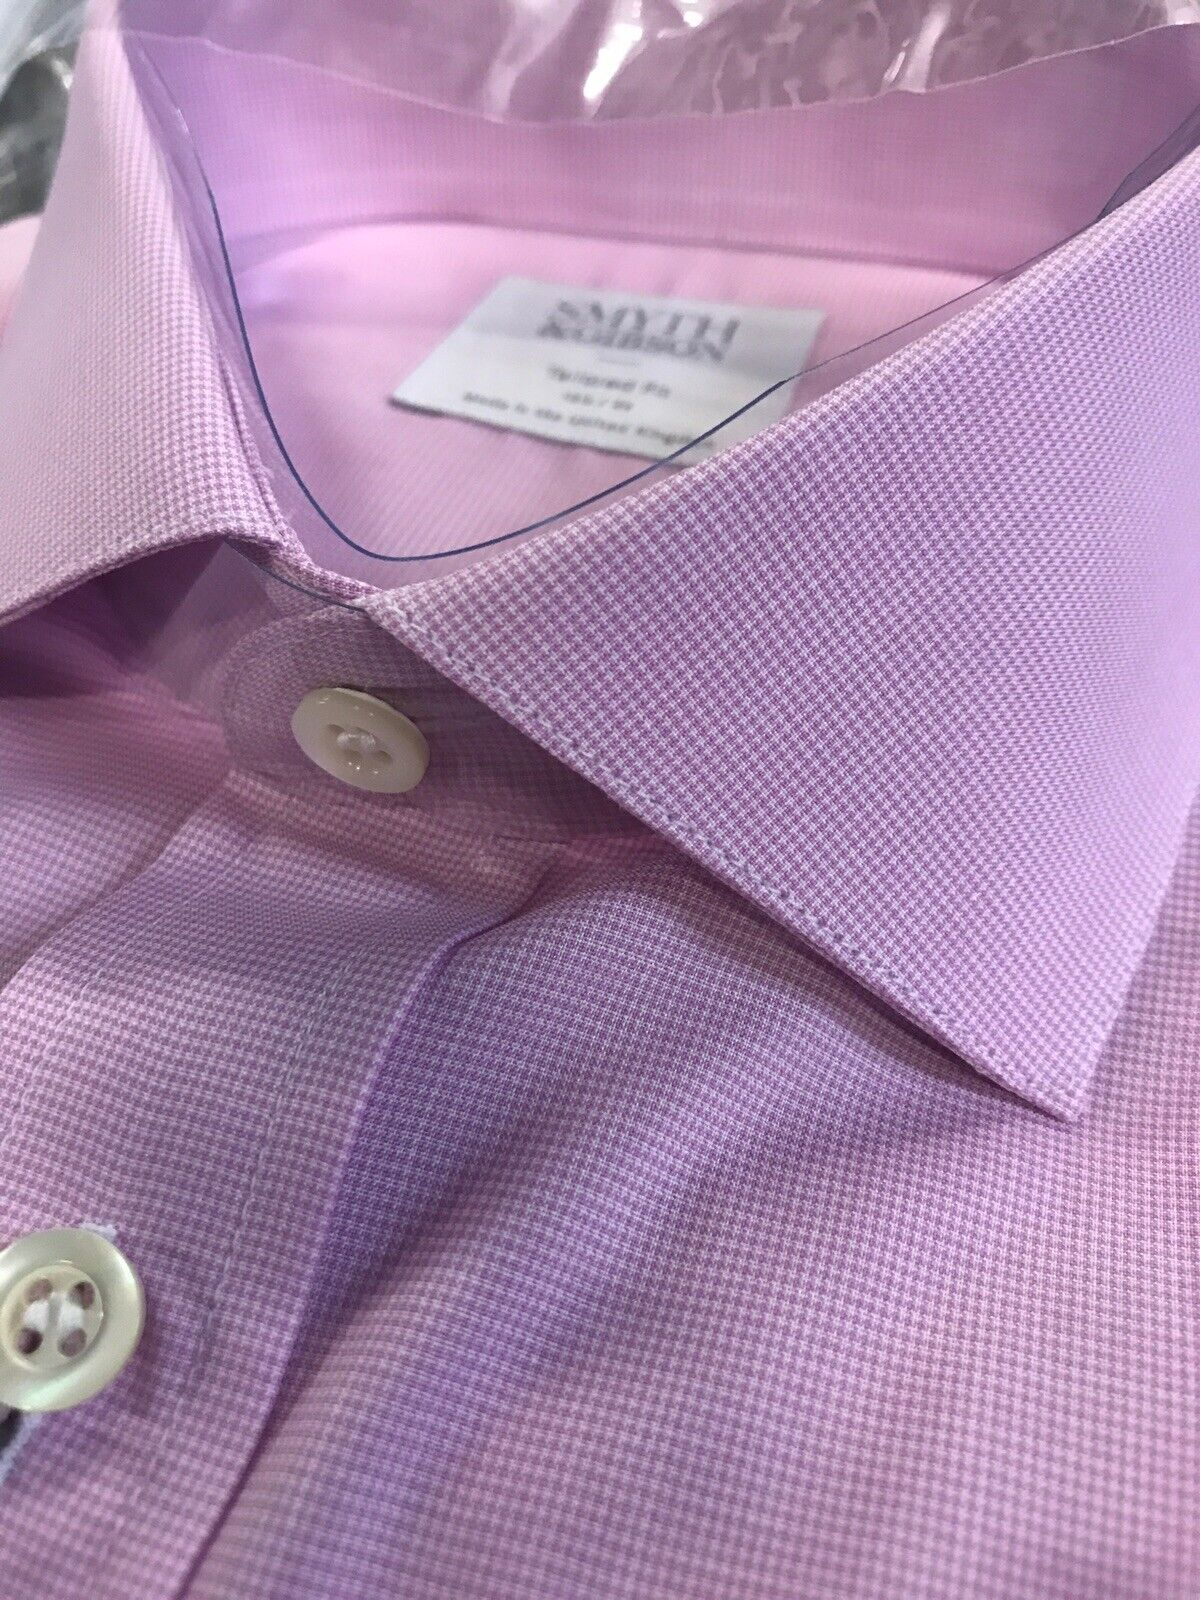 Smyth & Gibson hemd lila Micro Houndstooth 15.5 TailGoldt Fit UK Made